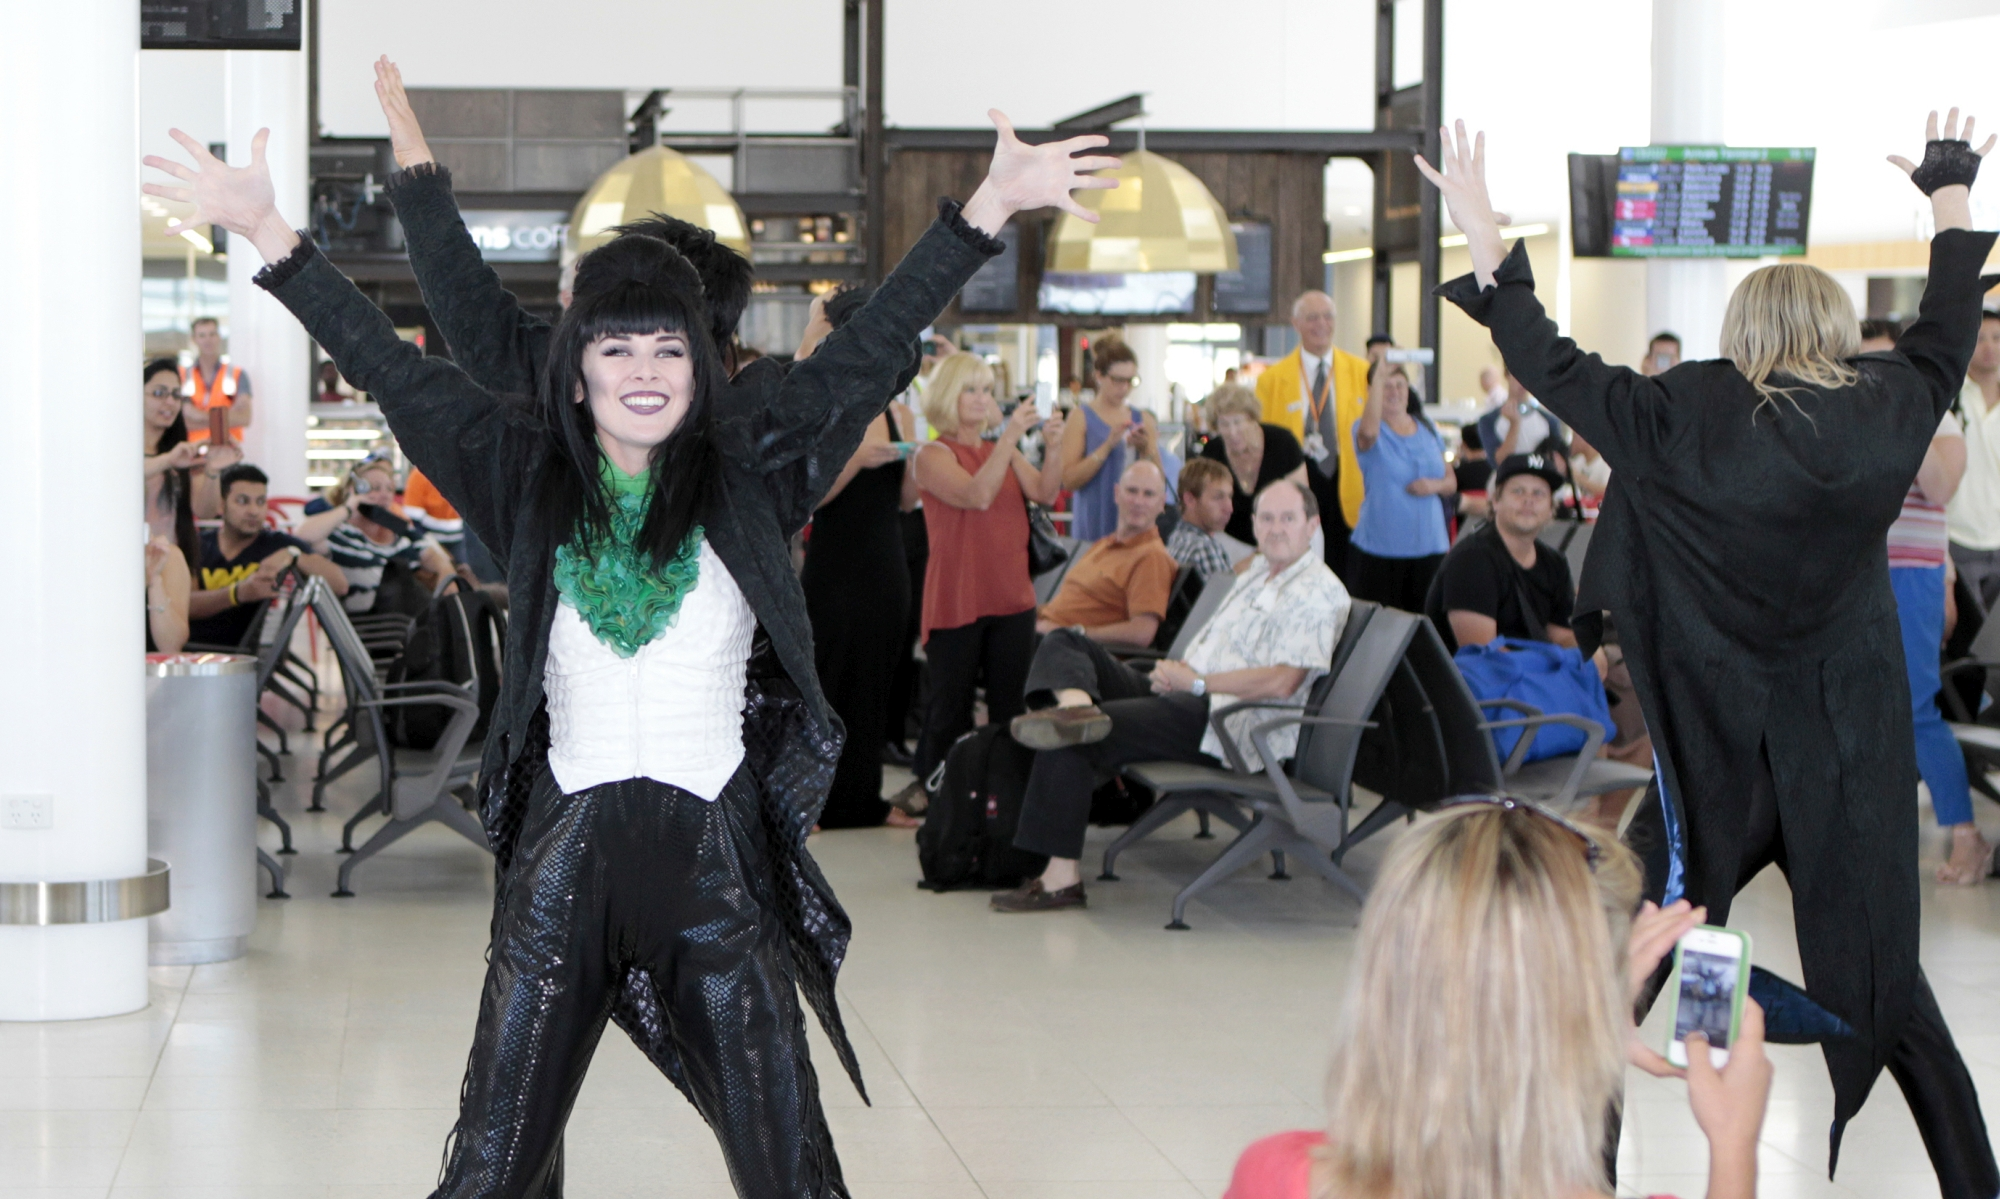 Visitors to Terminal 2 at Perth Airport got a live reminder of the mantra made famous by the 1975 cult movie The Rocky Horror Picture Show as performers from Richard O'Brien's Rocky Horror Show – on now at Crown Theatre – erupted into song and dance onsite last Tuesday.